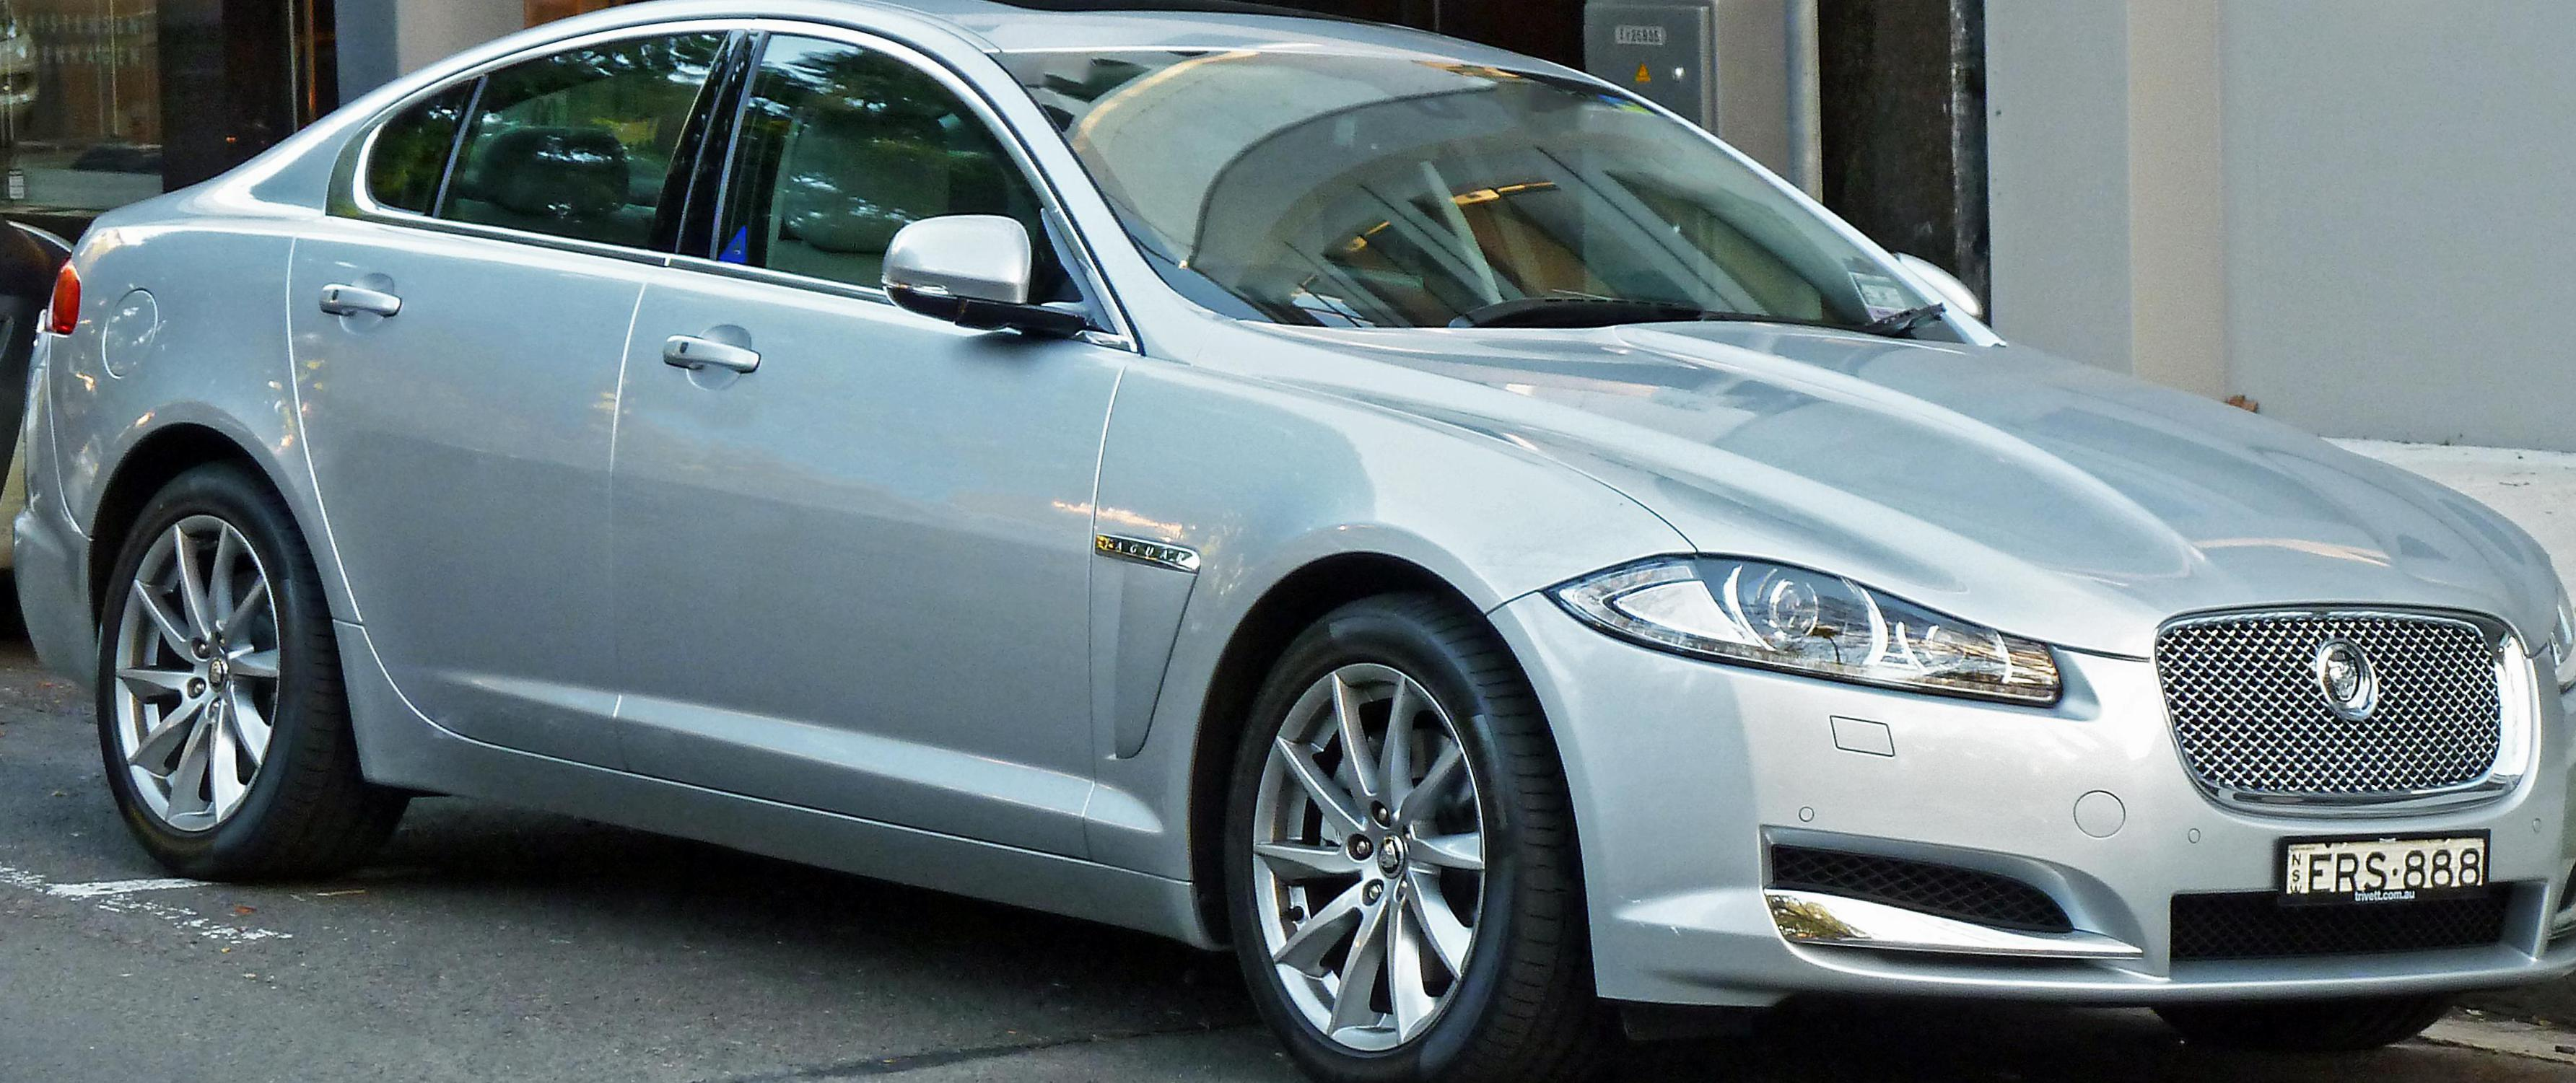 Jaguar XF model 2006